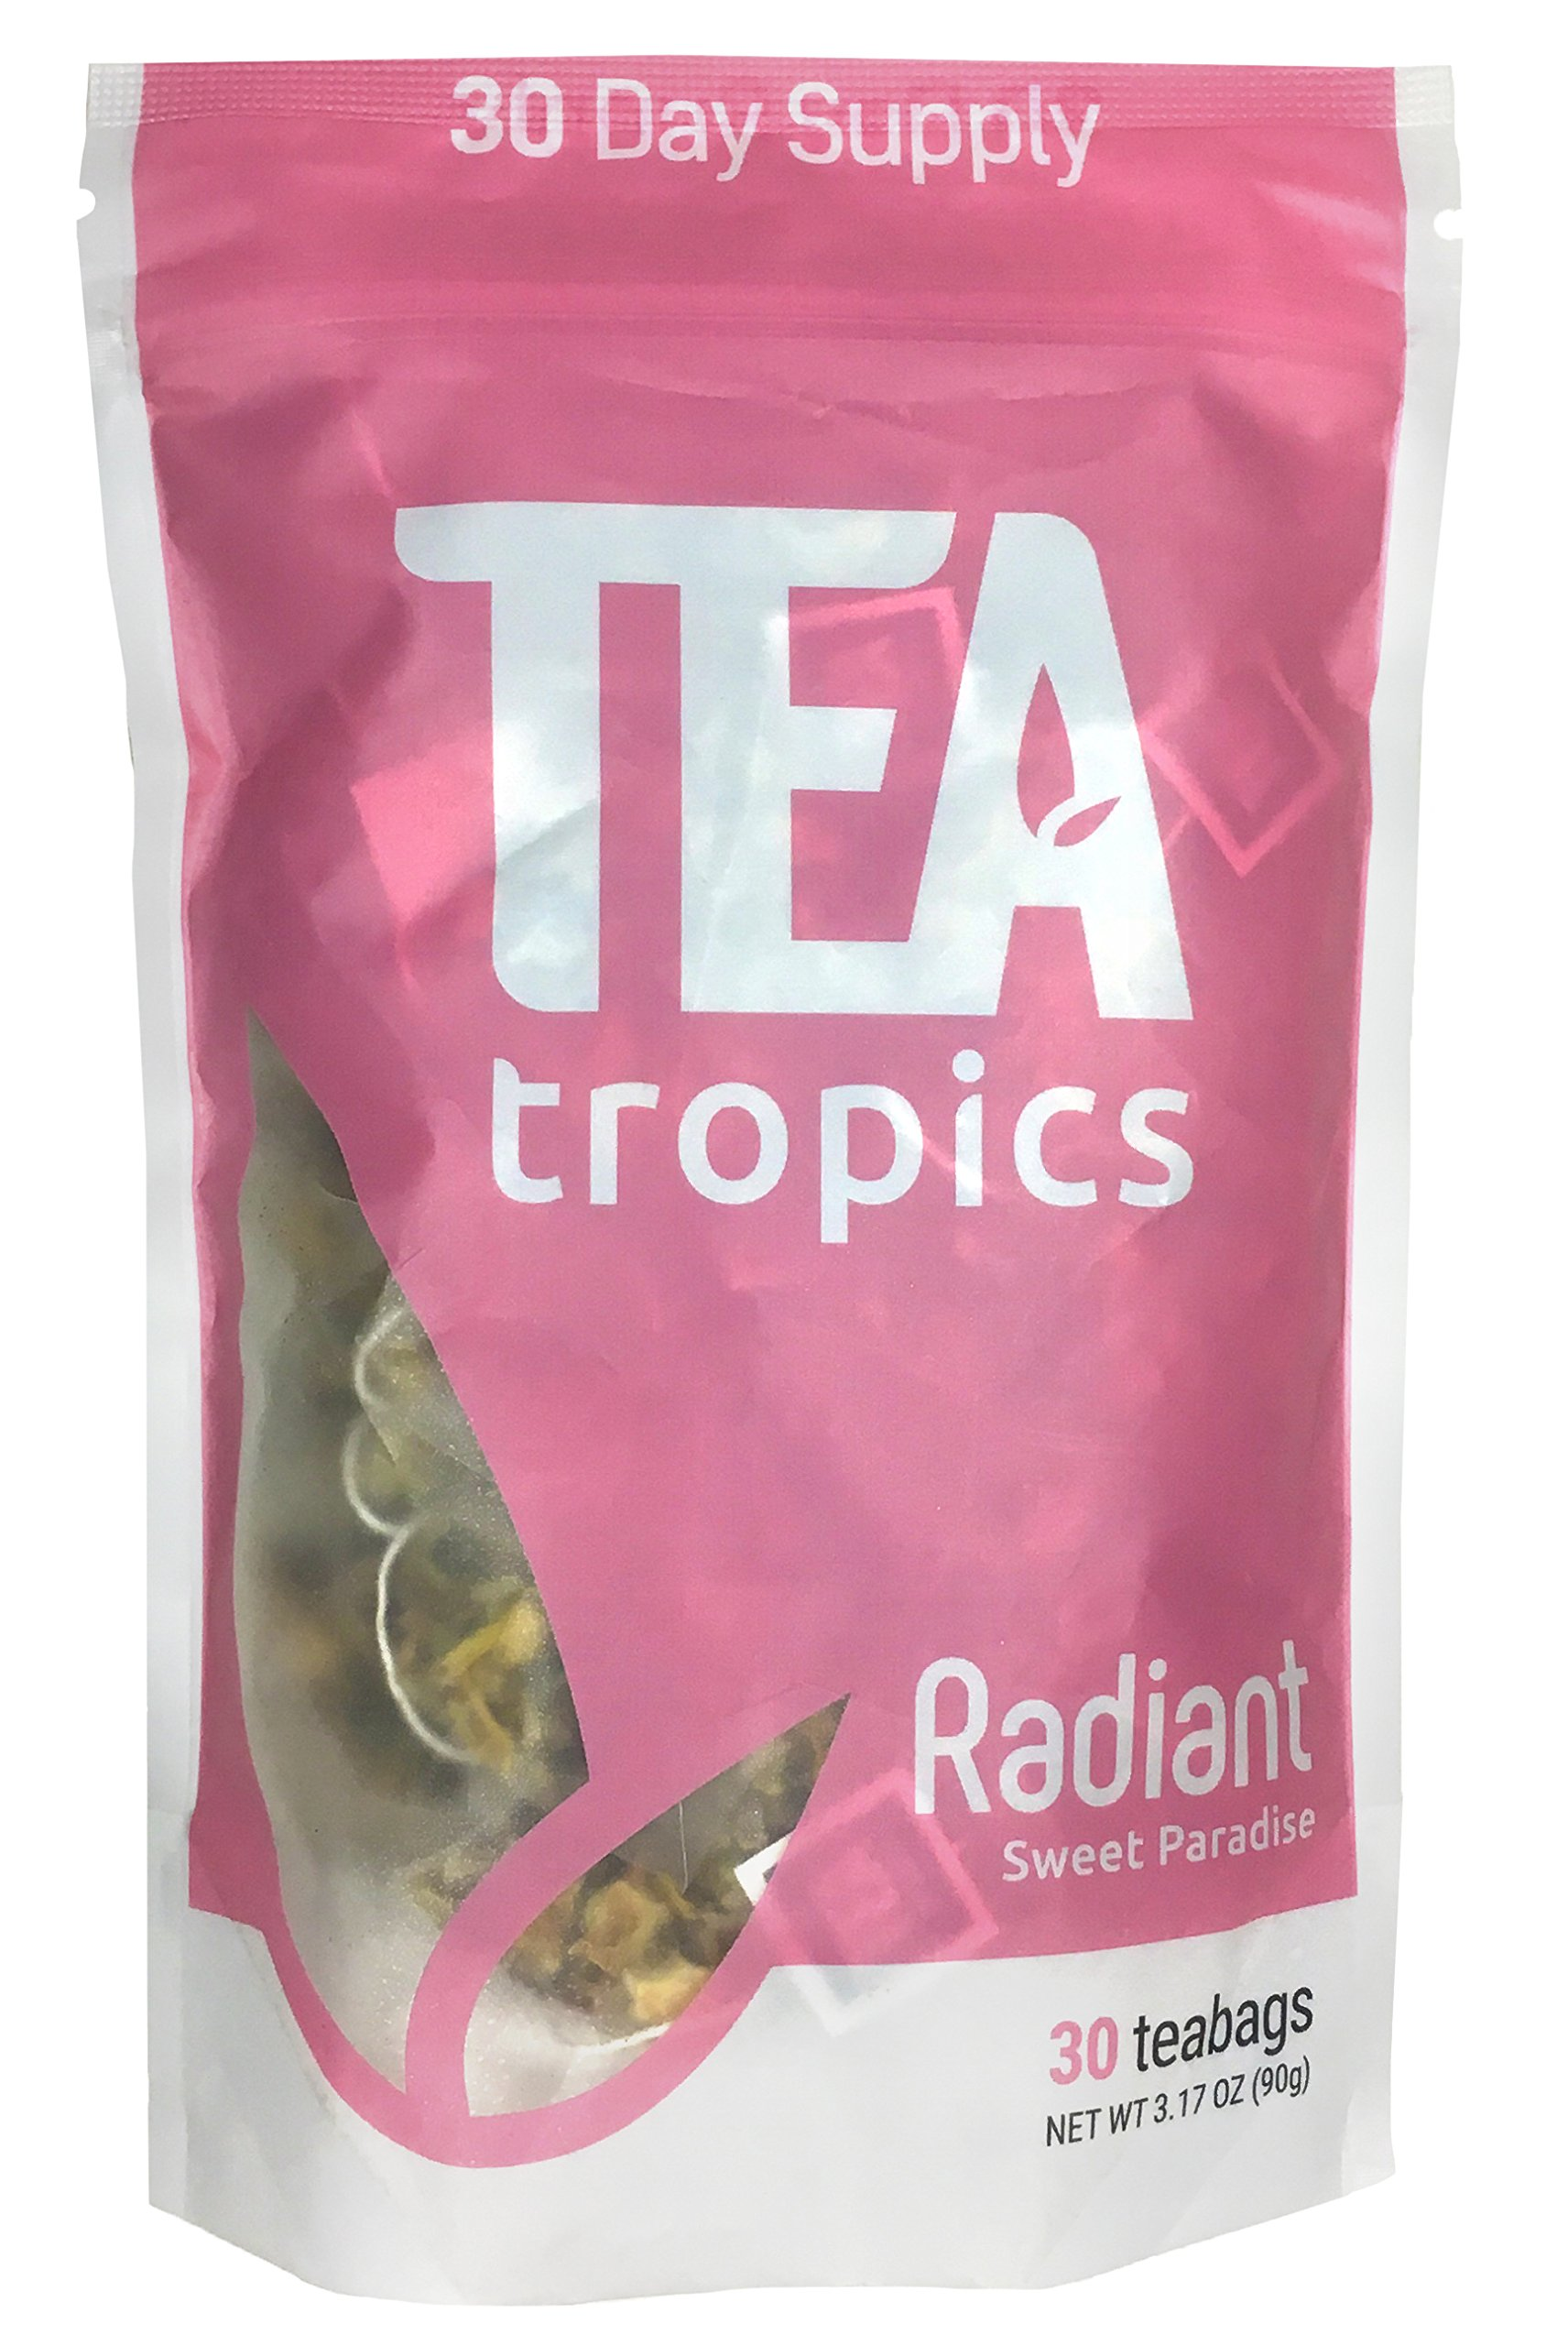 Radiant Skin Detox Tea 30 Day Cleanse -Healthy Herbal Tea for Detoxifying Your Skin -Maximum Cleansing Fight Acne & Eczema -Brew Hot or Iced -Great Sweet Paradise Taste & Smell -by Tea Tropics